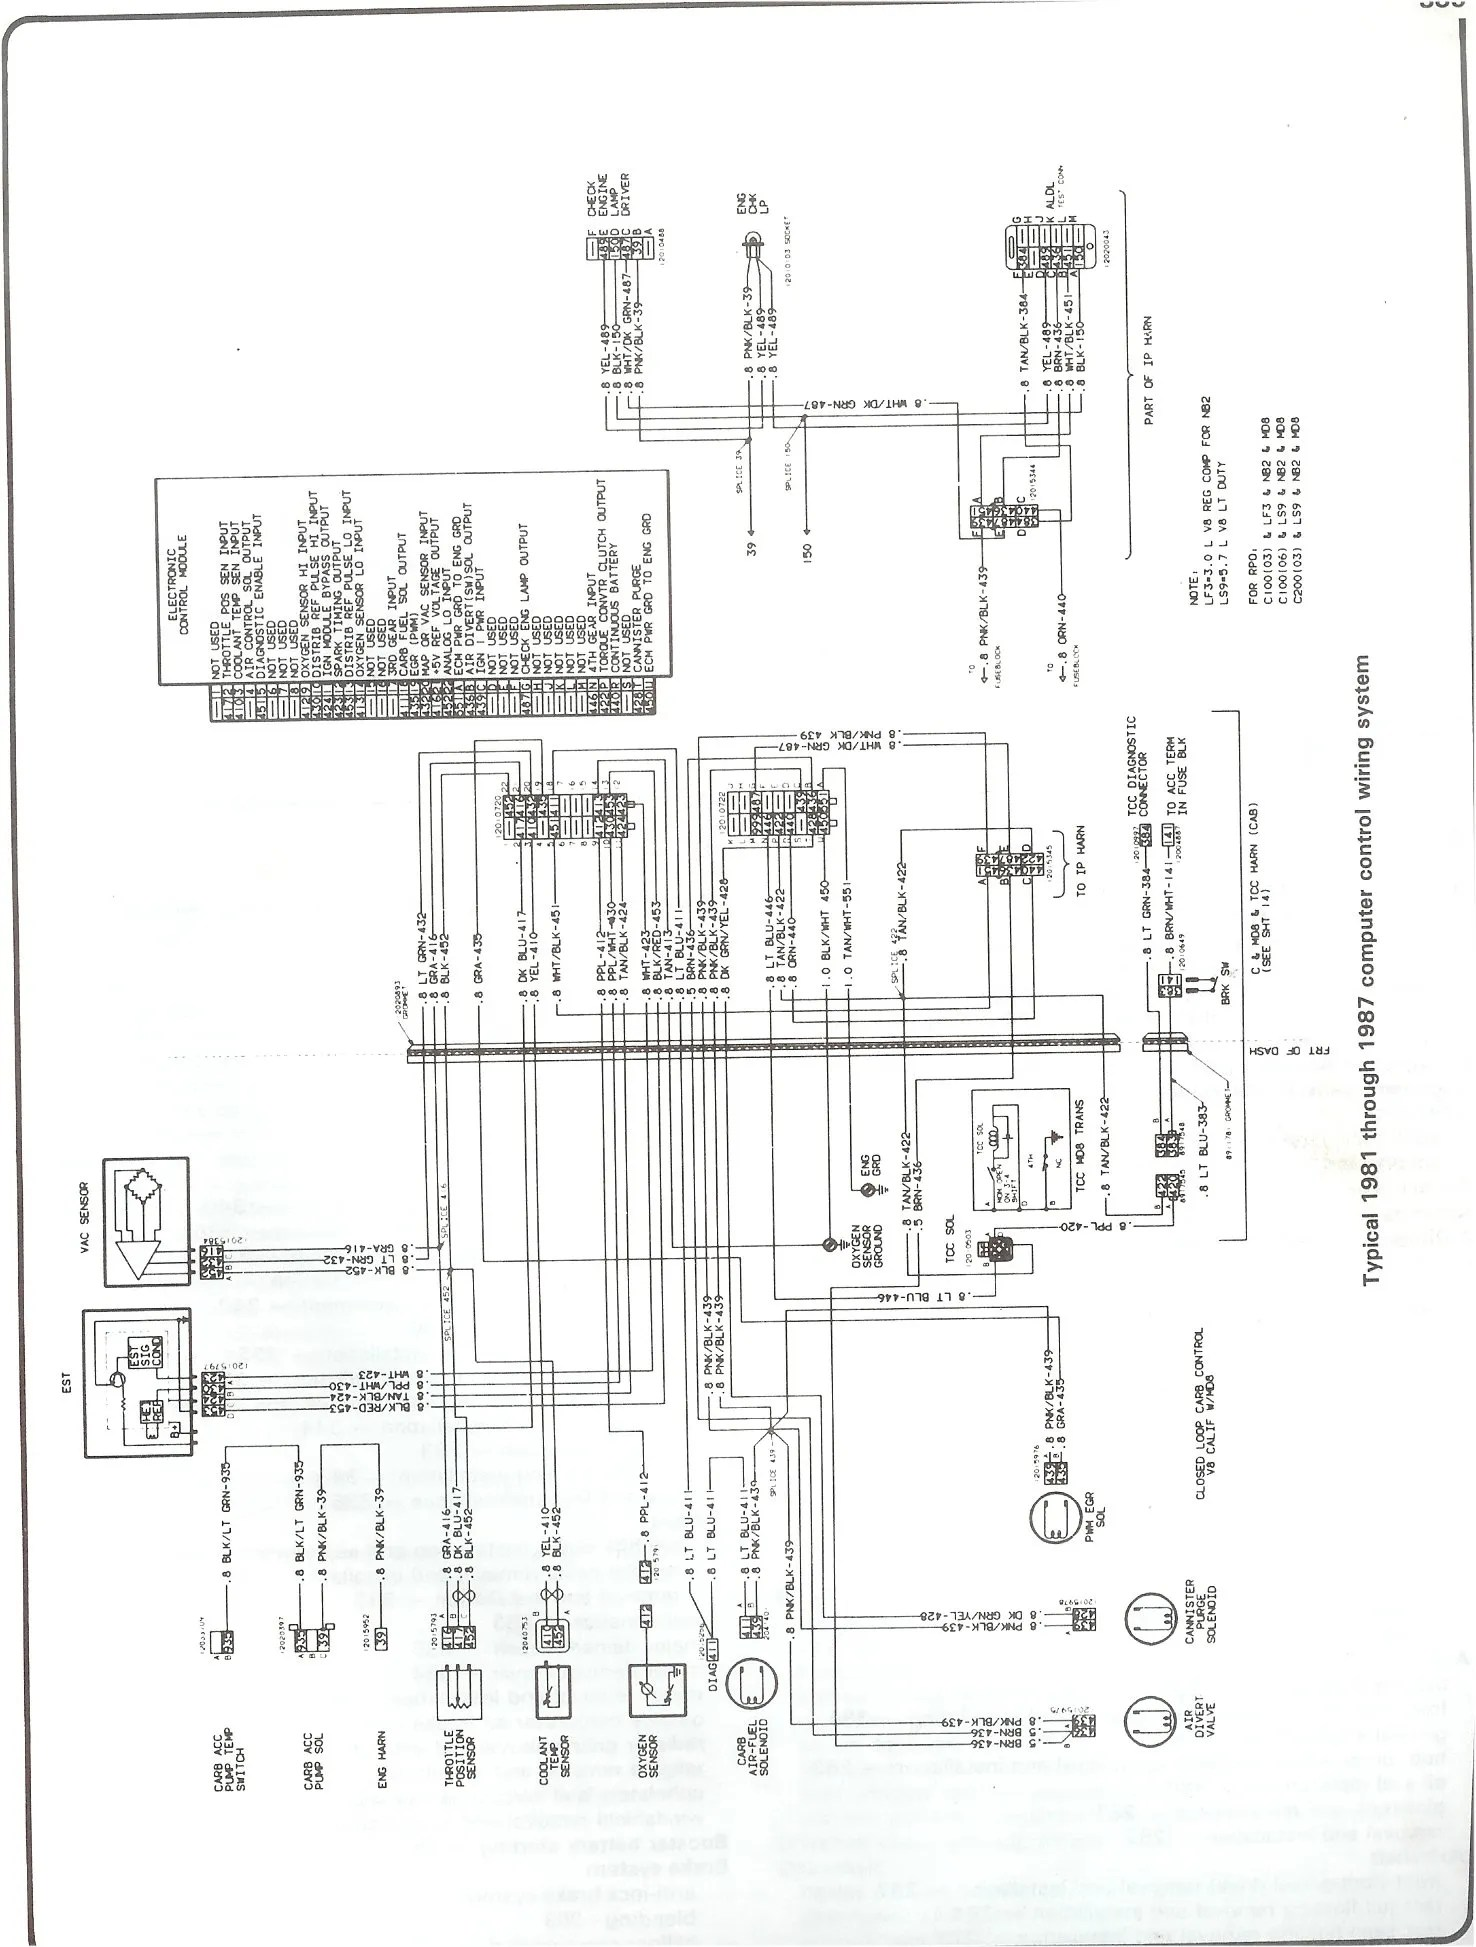 hight resolution of complete 73 87 wiring diagrams rh forum 73 87chevytrucks com 1985 gmc sierra wiring diagram 1985 gmc k1500 wiring diagram